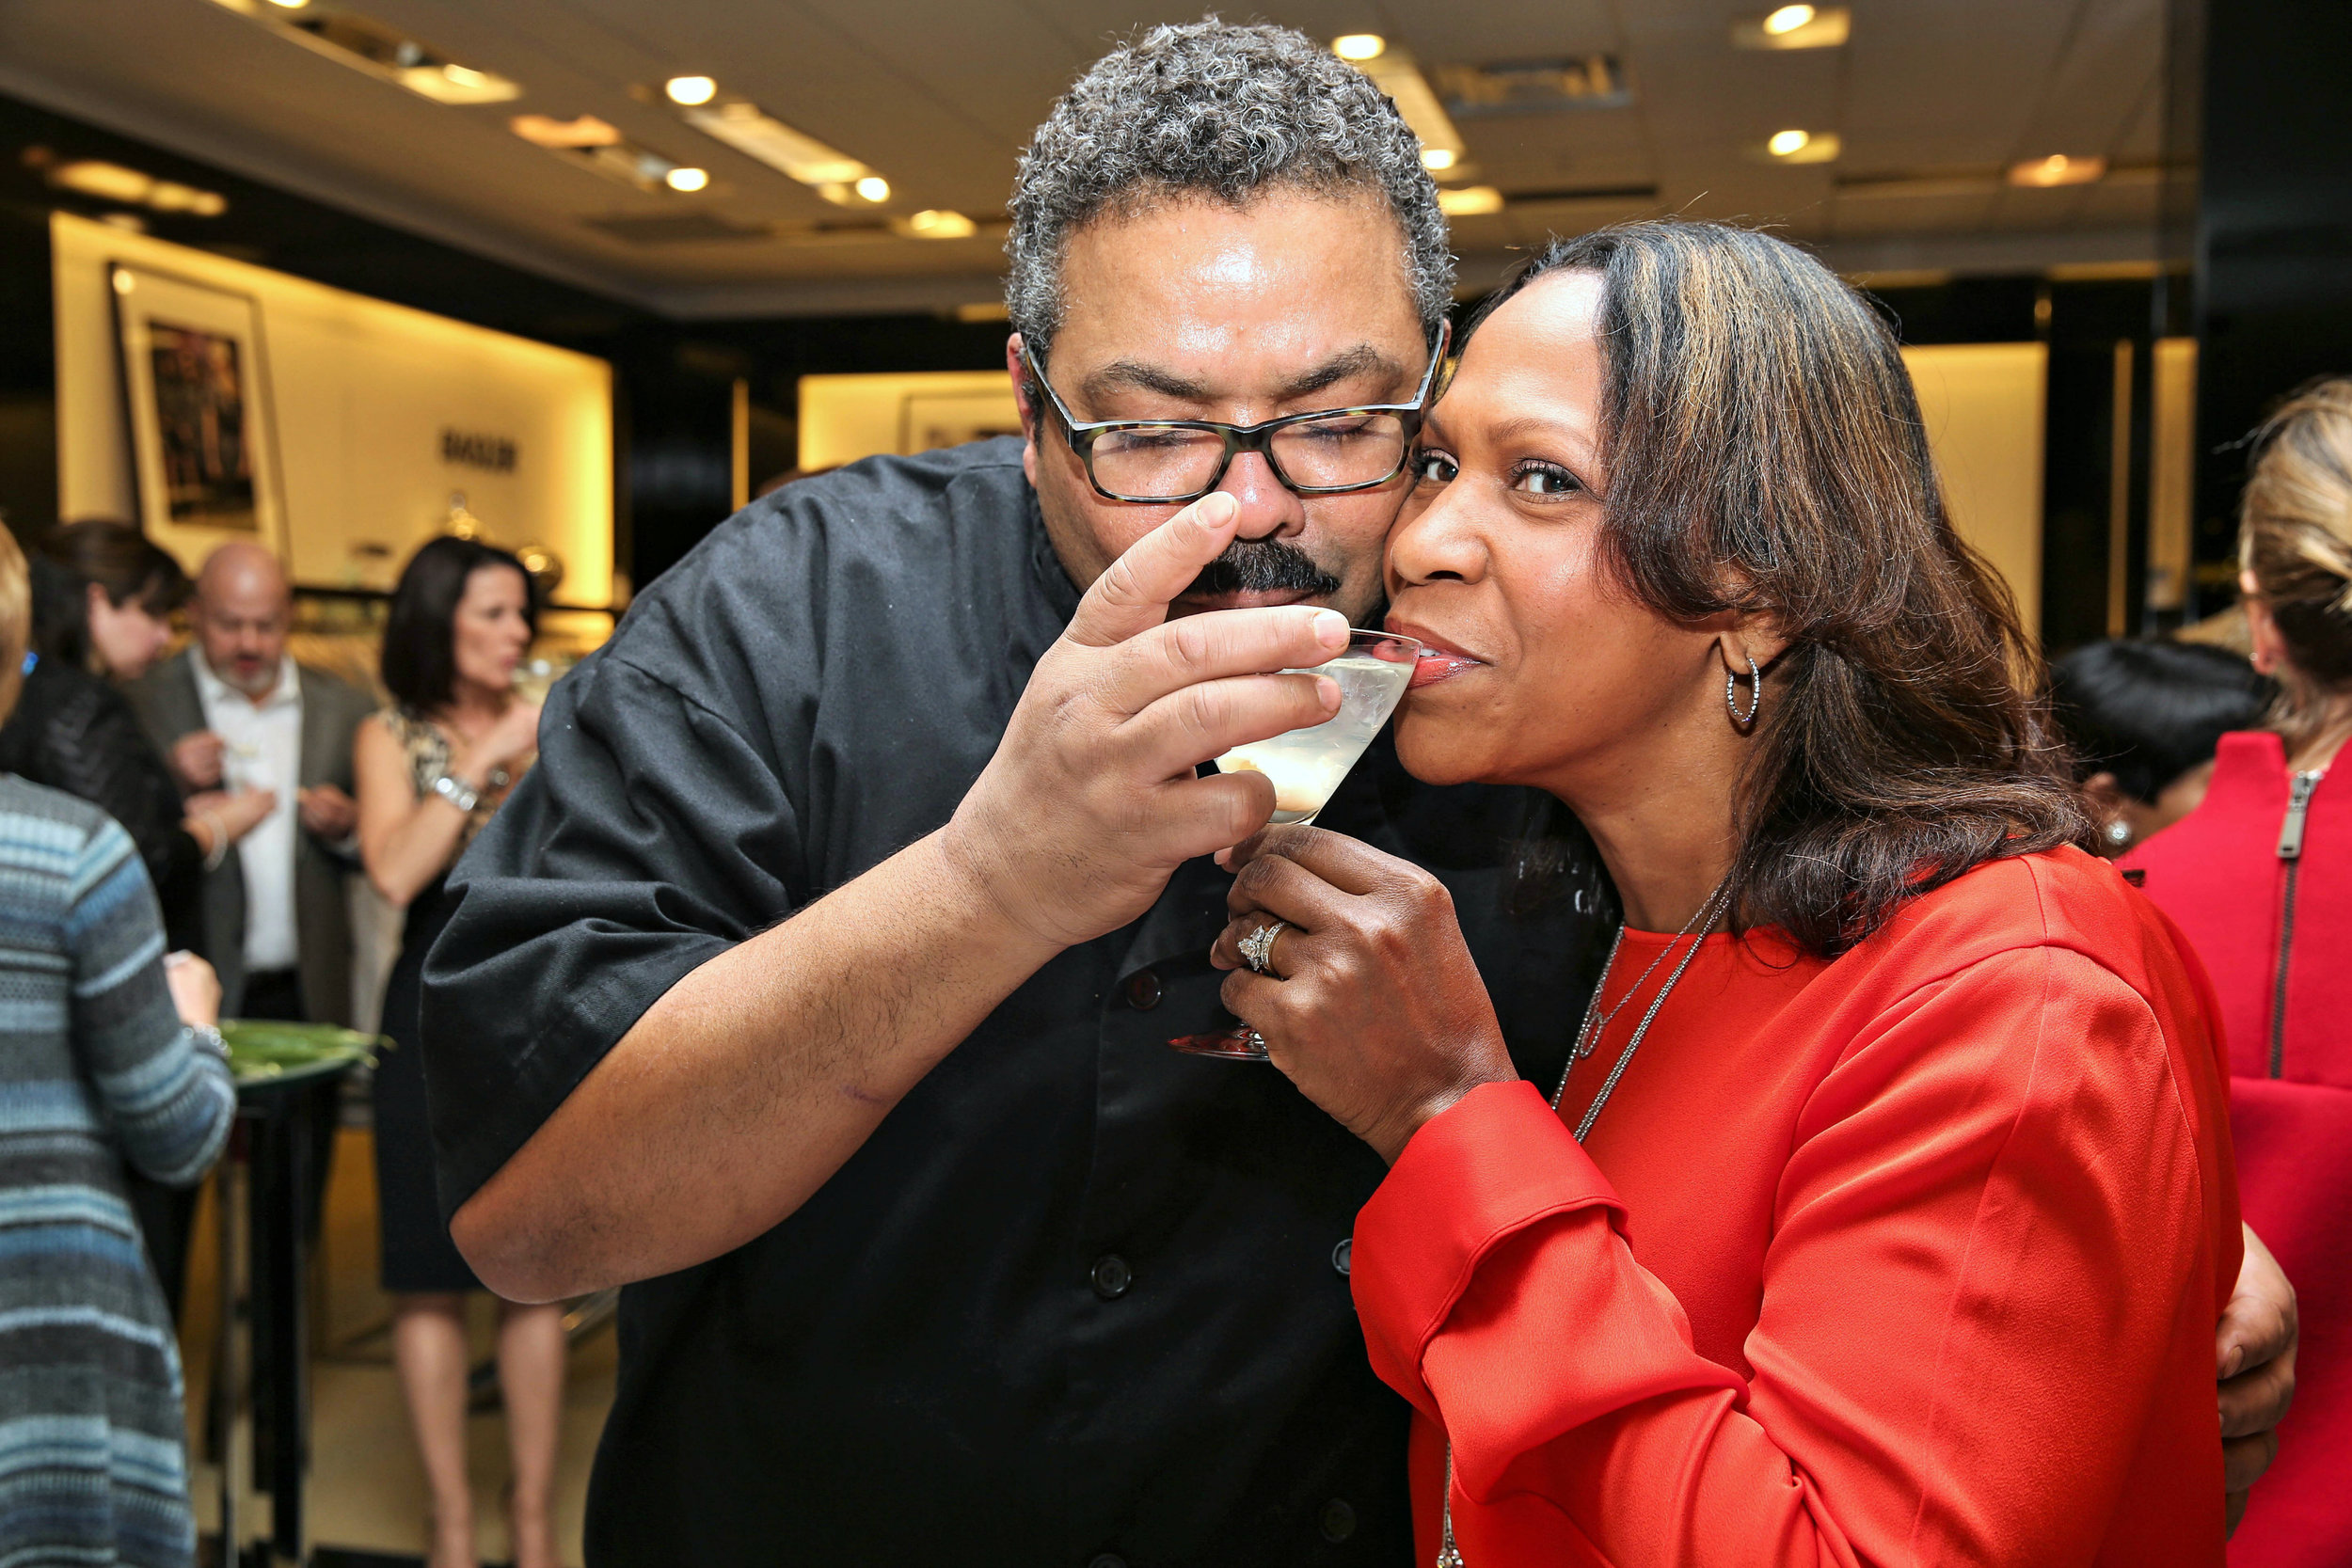 Chef Juan and Judith Toast with a Lichi-tini